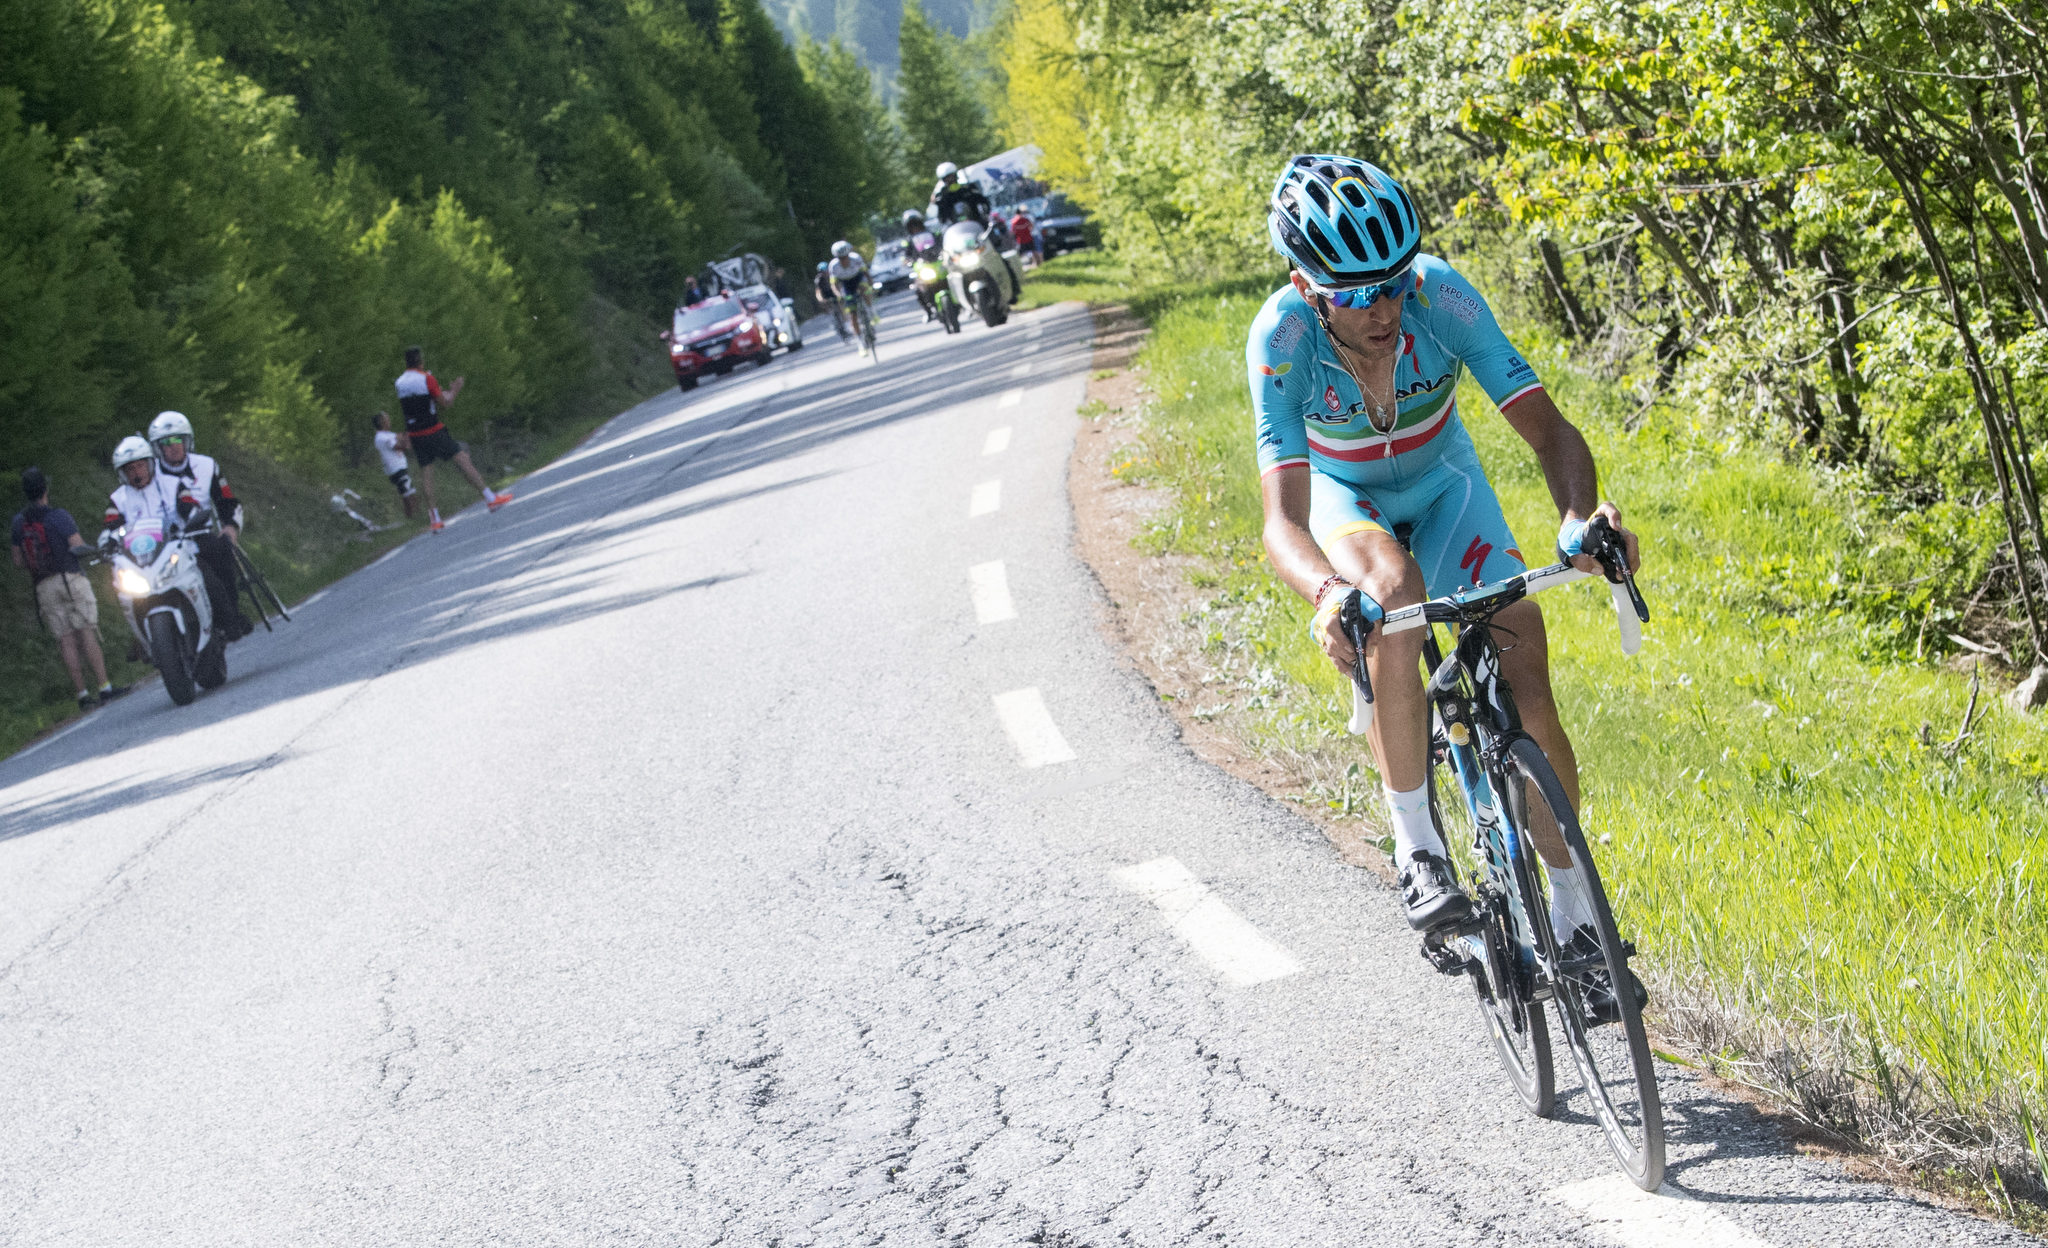 Nibali (Astana) headed to victory in Risoul. Photo by ANSA/CLAUDIO PERI